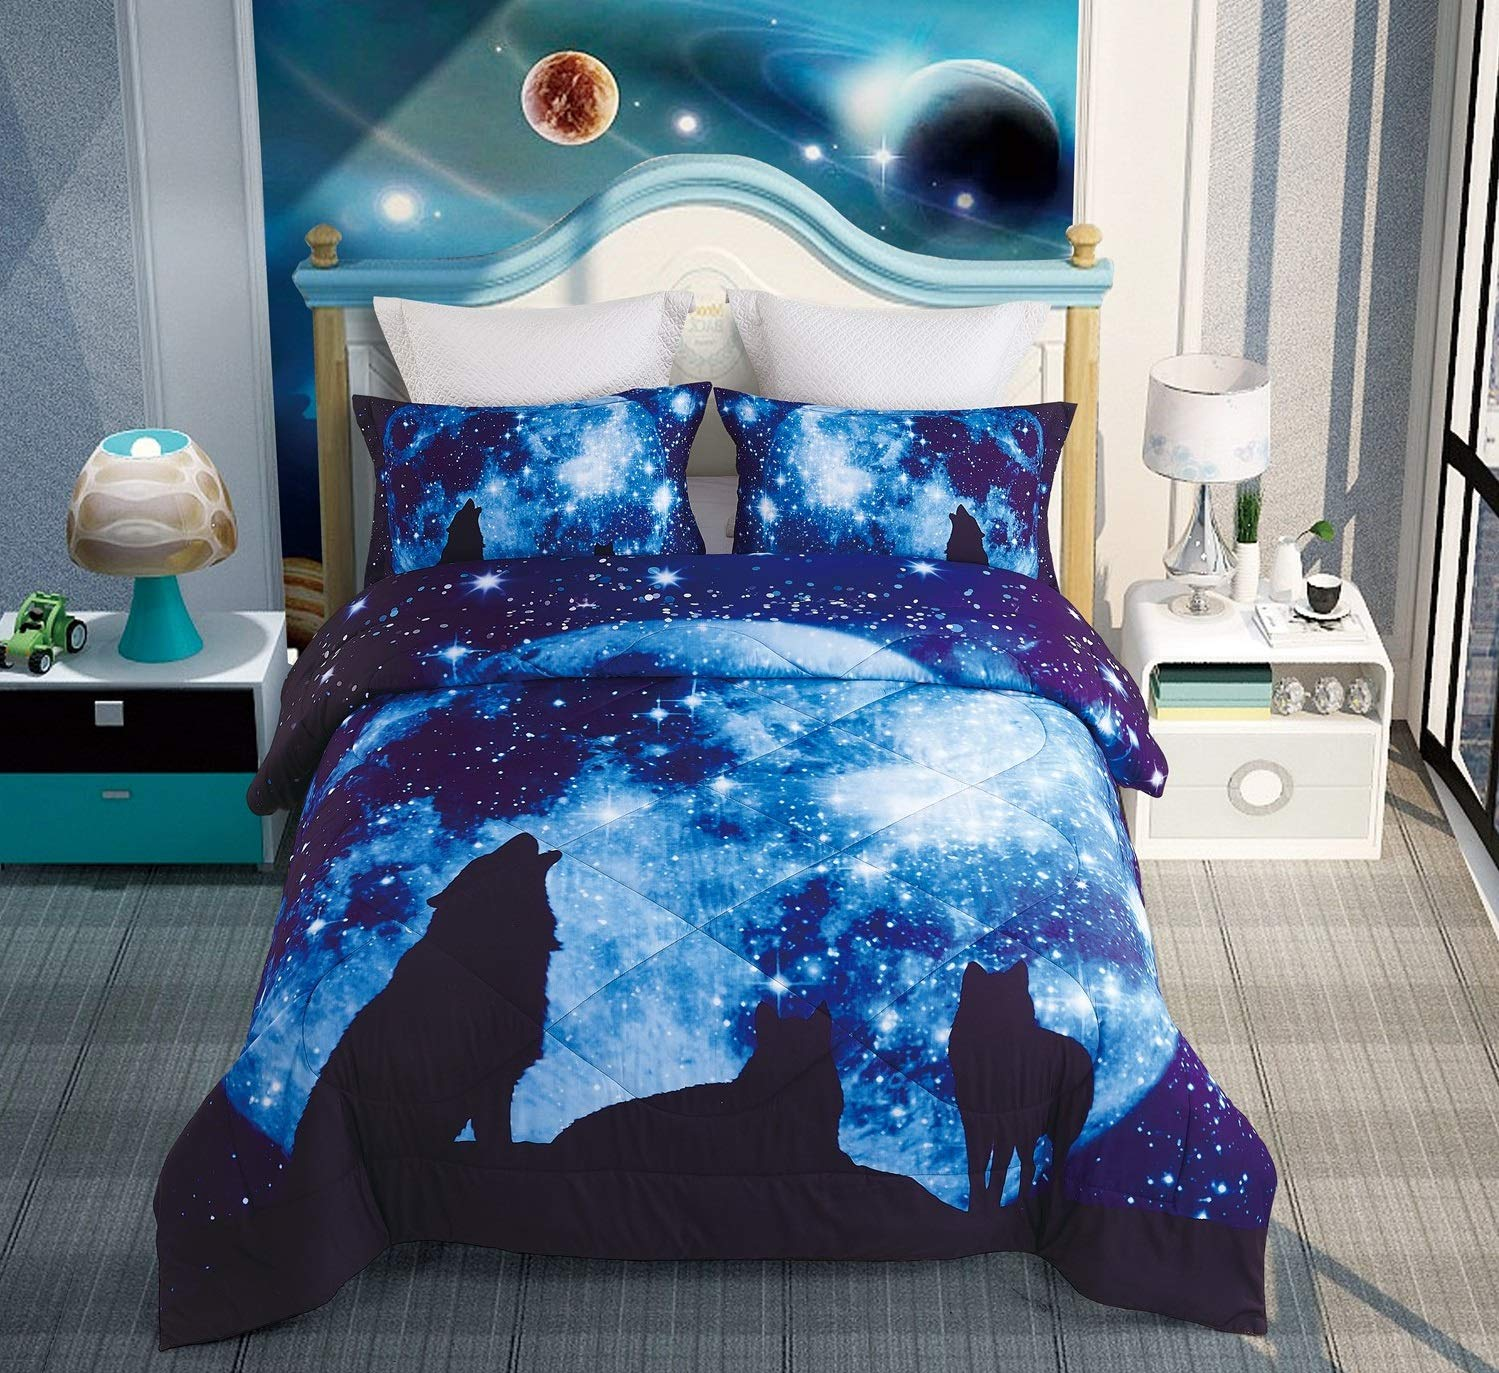 DECMAY 3D Galaxy Wolf Bedding Queen Wolves Blue Moonlight Space Sky 3 Pieces with 1 Comforter and 2 Pillow Cases Box Stitched Durable Quilt Set for Children and Adults by DECMAY